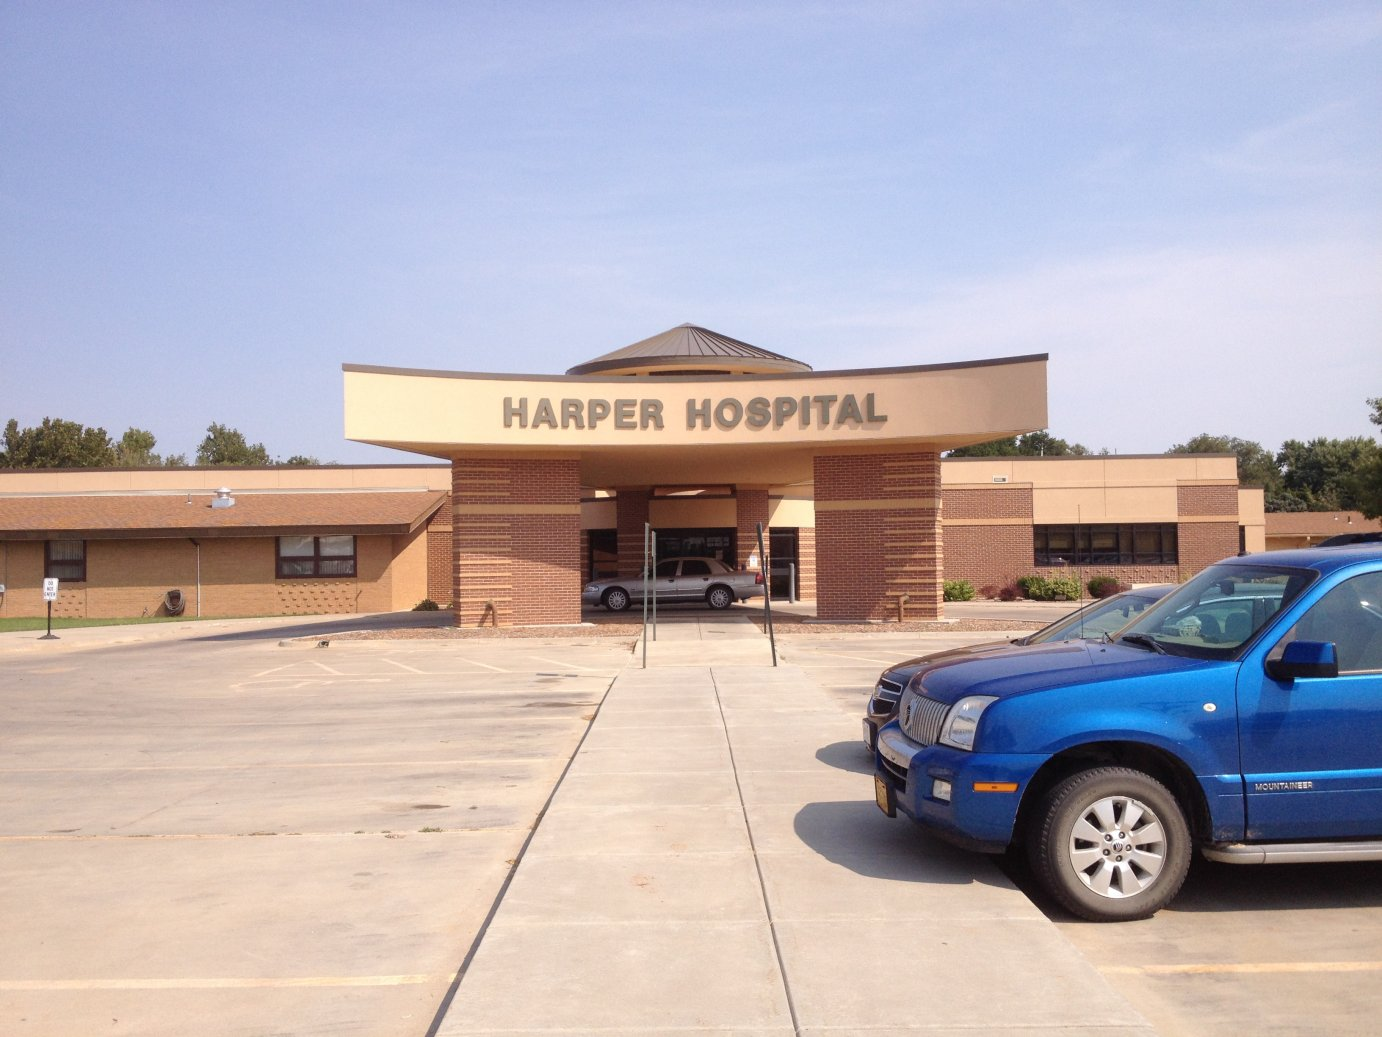 Community hospital in Harper, Kansas (Photo by Bryan Thompson)